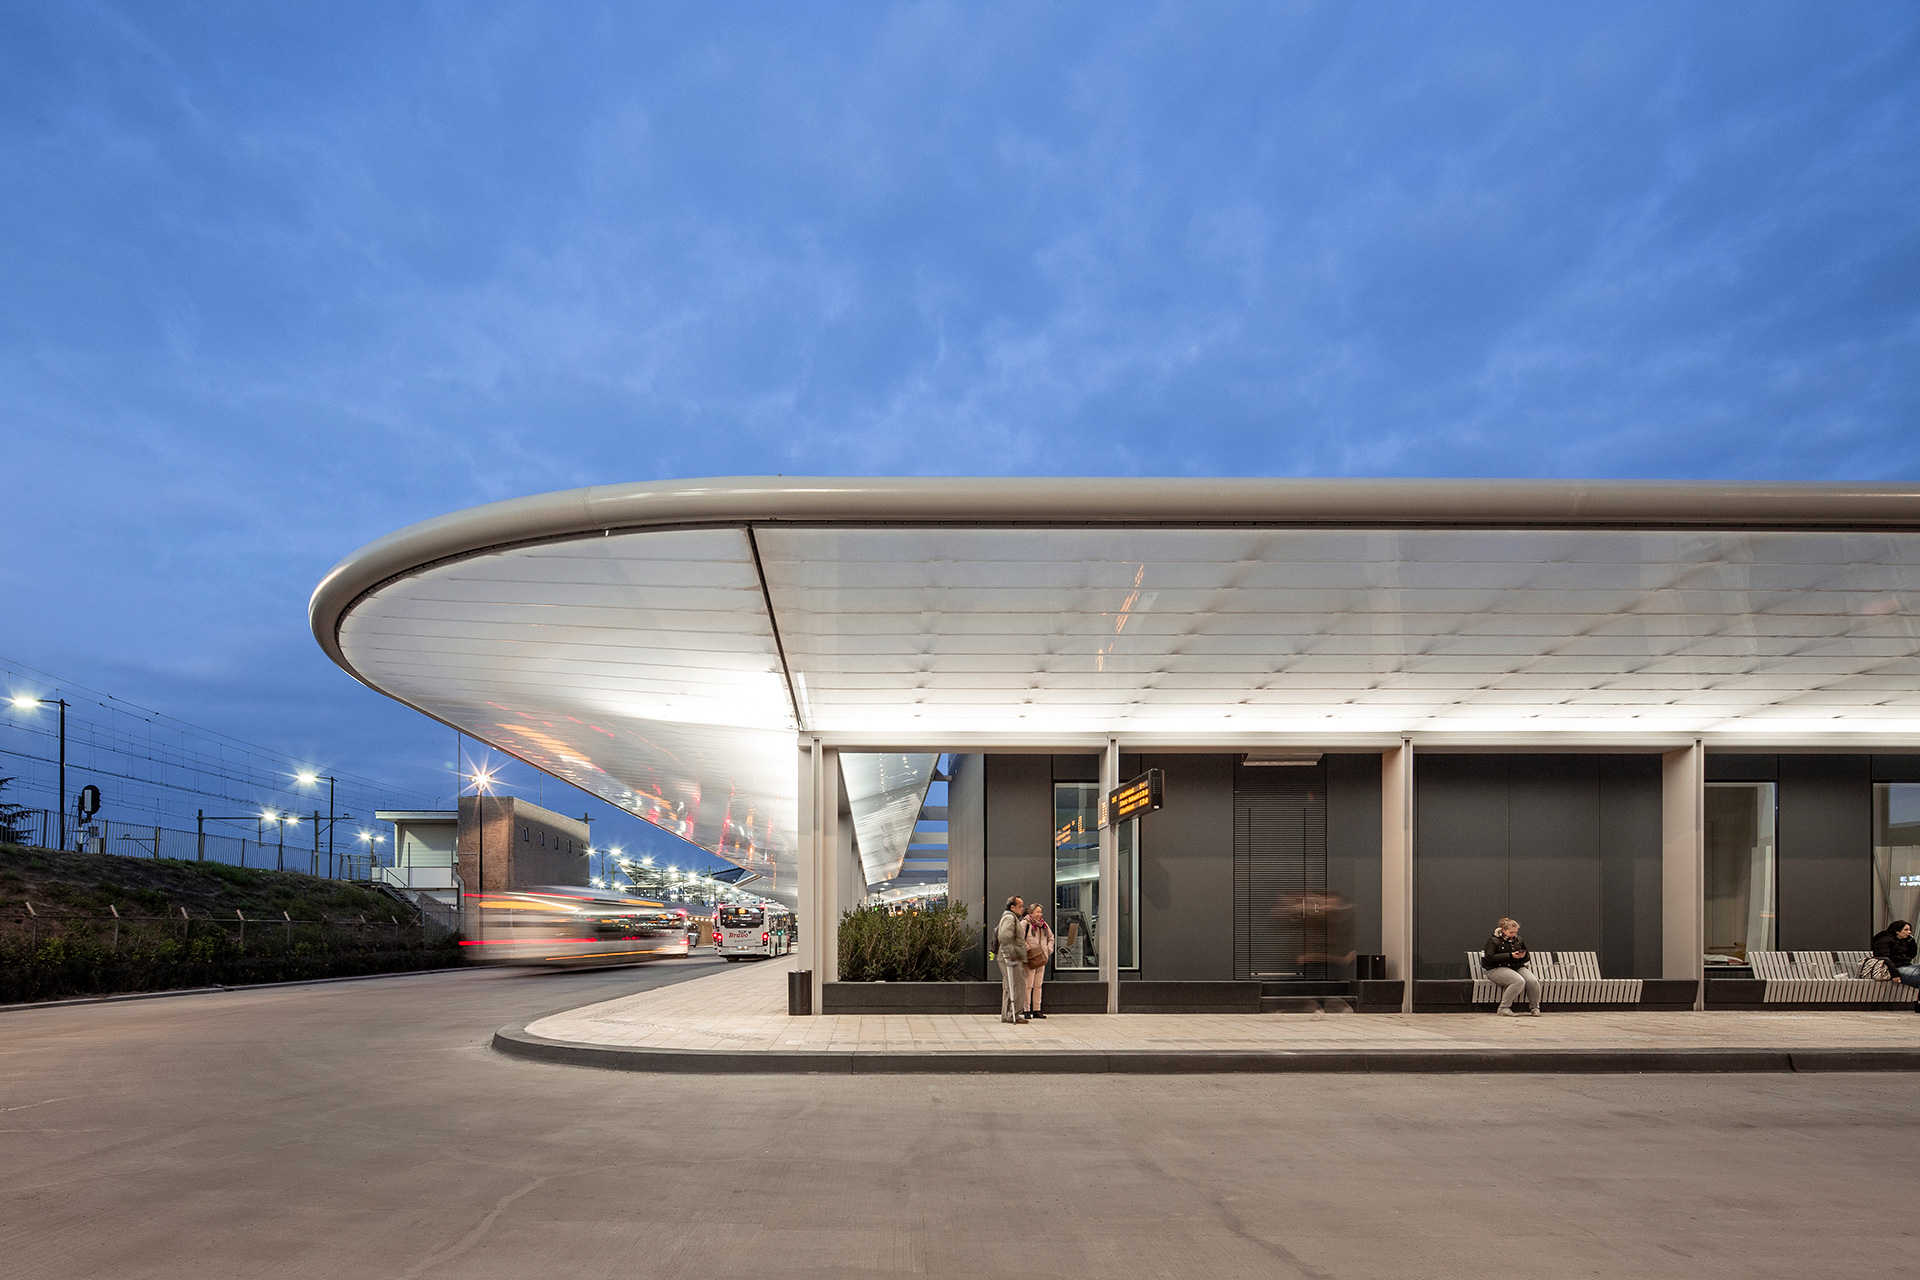 The roof of Tilburg bus station designed by Cepezed has 2,690 square feet of solar panels that produce enough energy to power the lighting, digital signage and canteen for the staff | Tilburg Bus Station| Cepezed| STIR